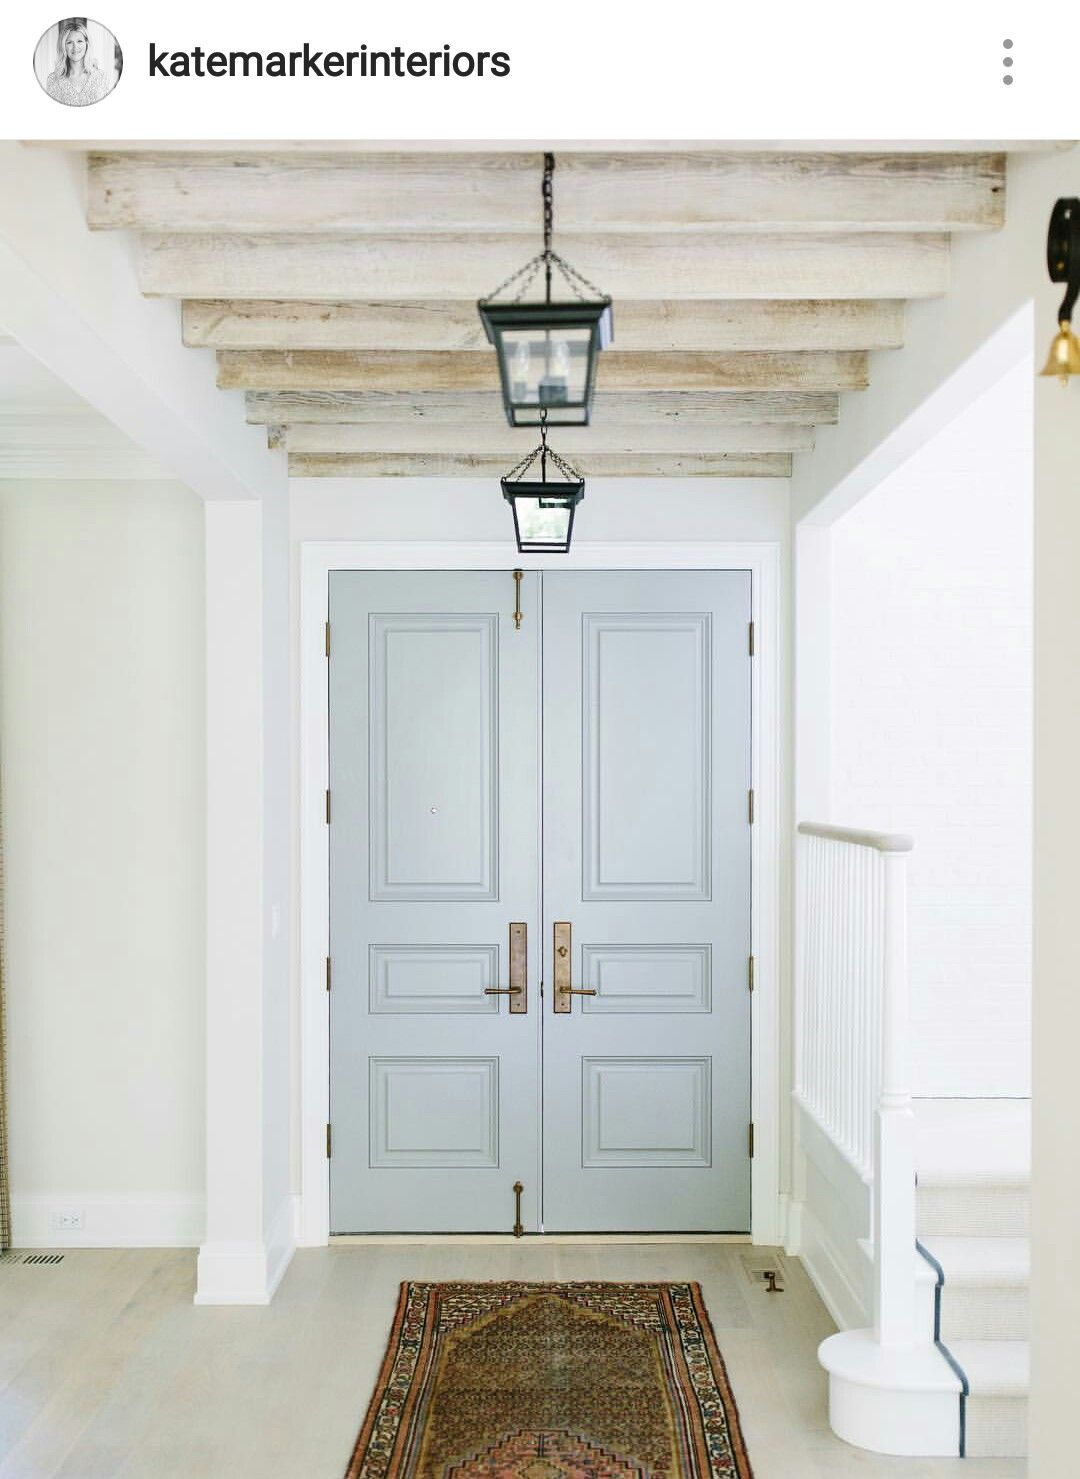 Pin by Ellie on paint | Pinterest | Doors, Door entry and Interior ...